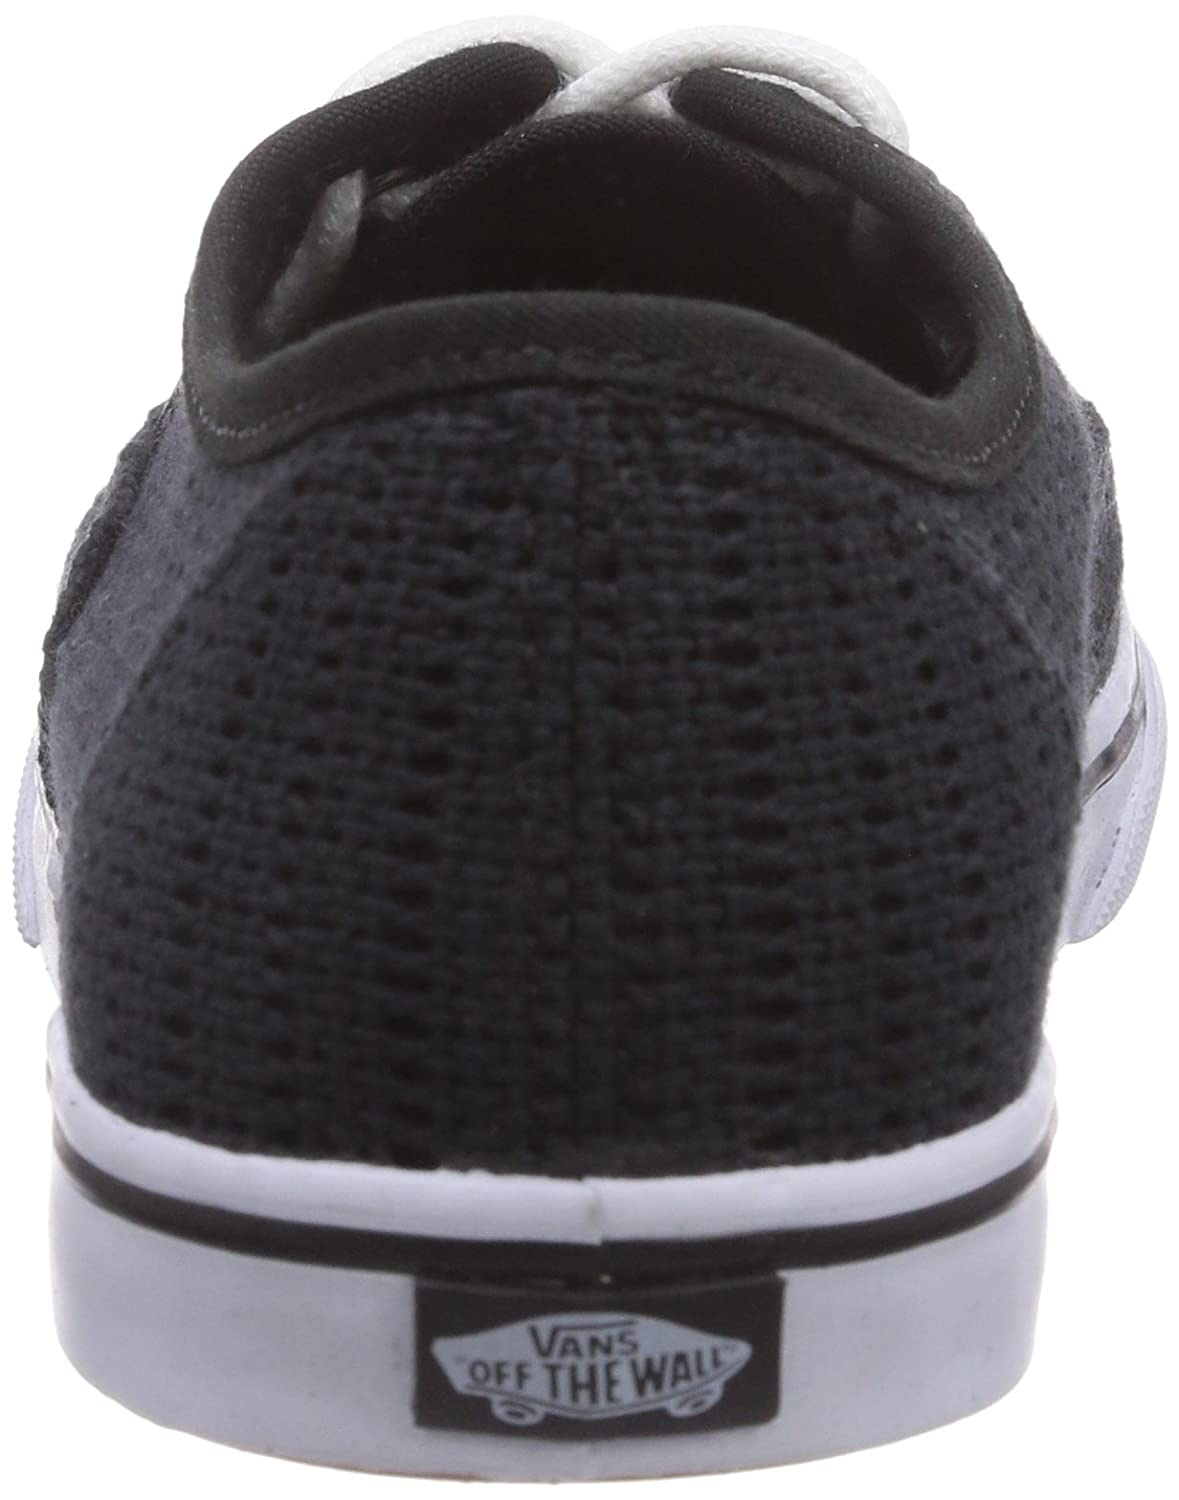 Vans Authentic Lo Pro para hombre Blanco Mesh Lace Up Lace Up Sneakers  Zapatos (Malla) Negro 5ba1a524971